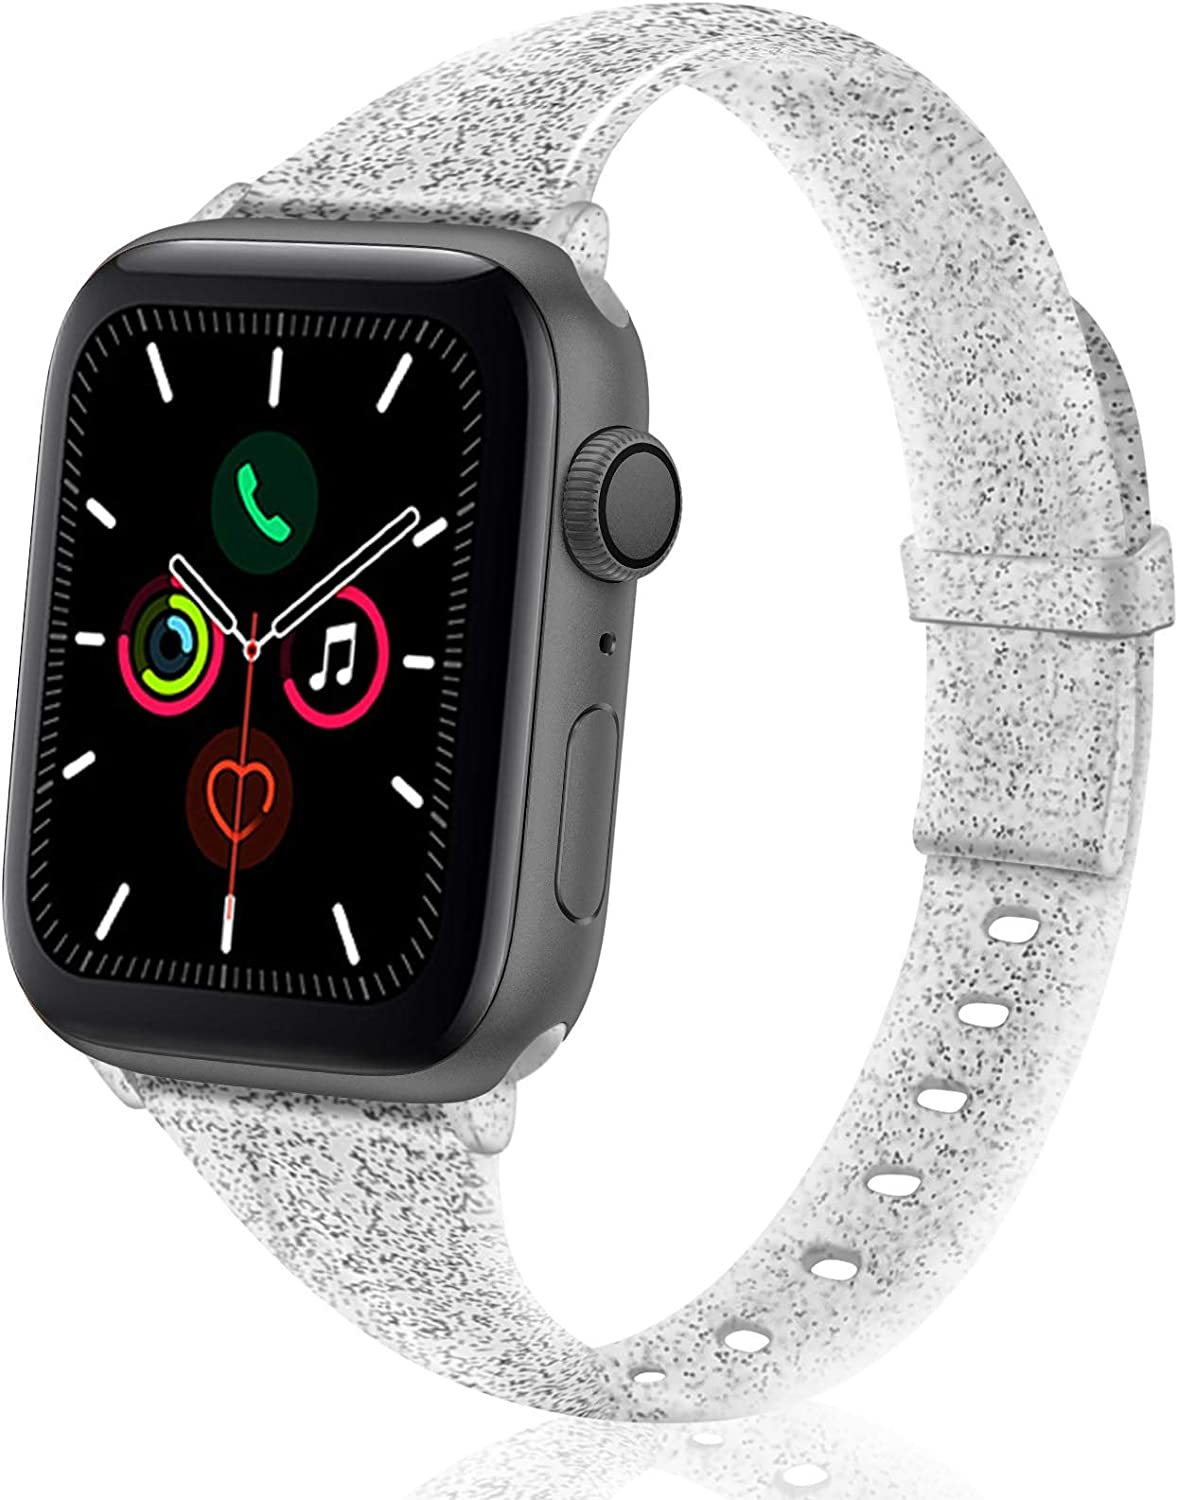 TSAAGAN Glitter Slim Silicone Band Compatible with Apple Watch 38mm 42mm 40mm 44mm, Sparkly Bling Thin Replacement Wristband Accessory for iWatch Series 5/4/3/2/1 (Glitter Black, 42mm/44mm)